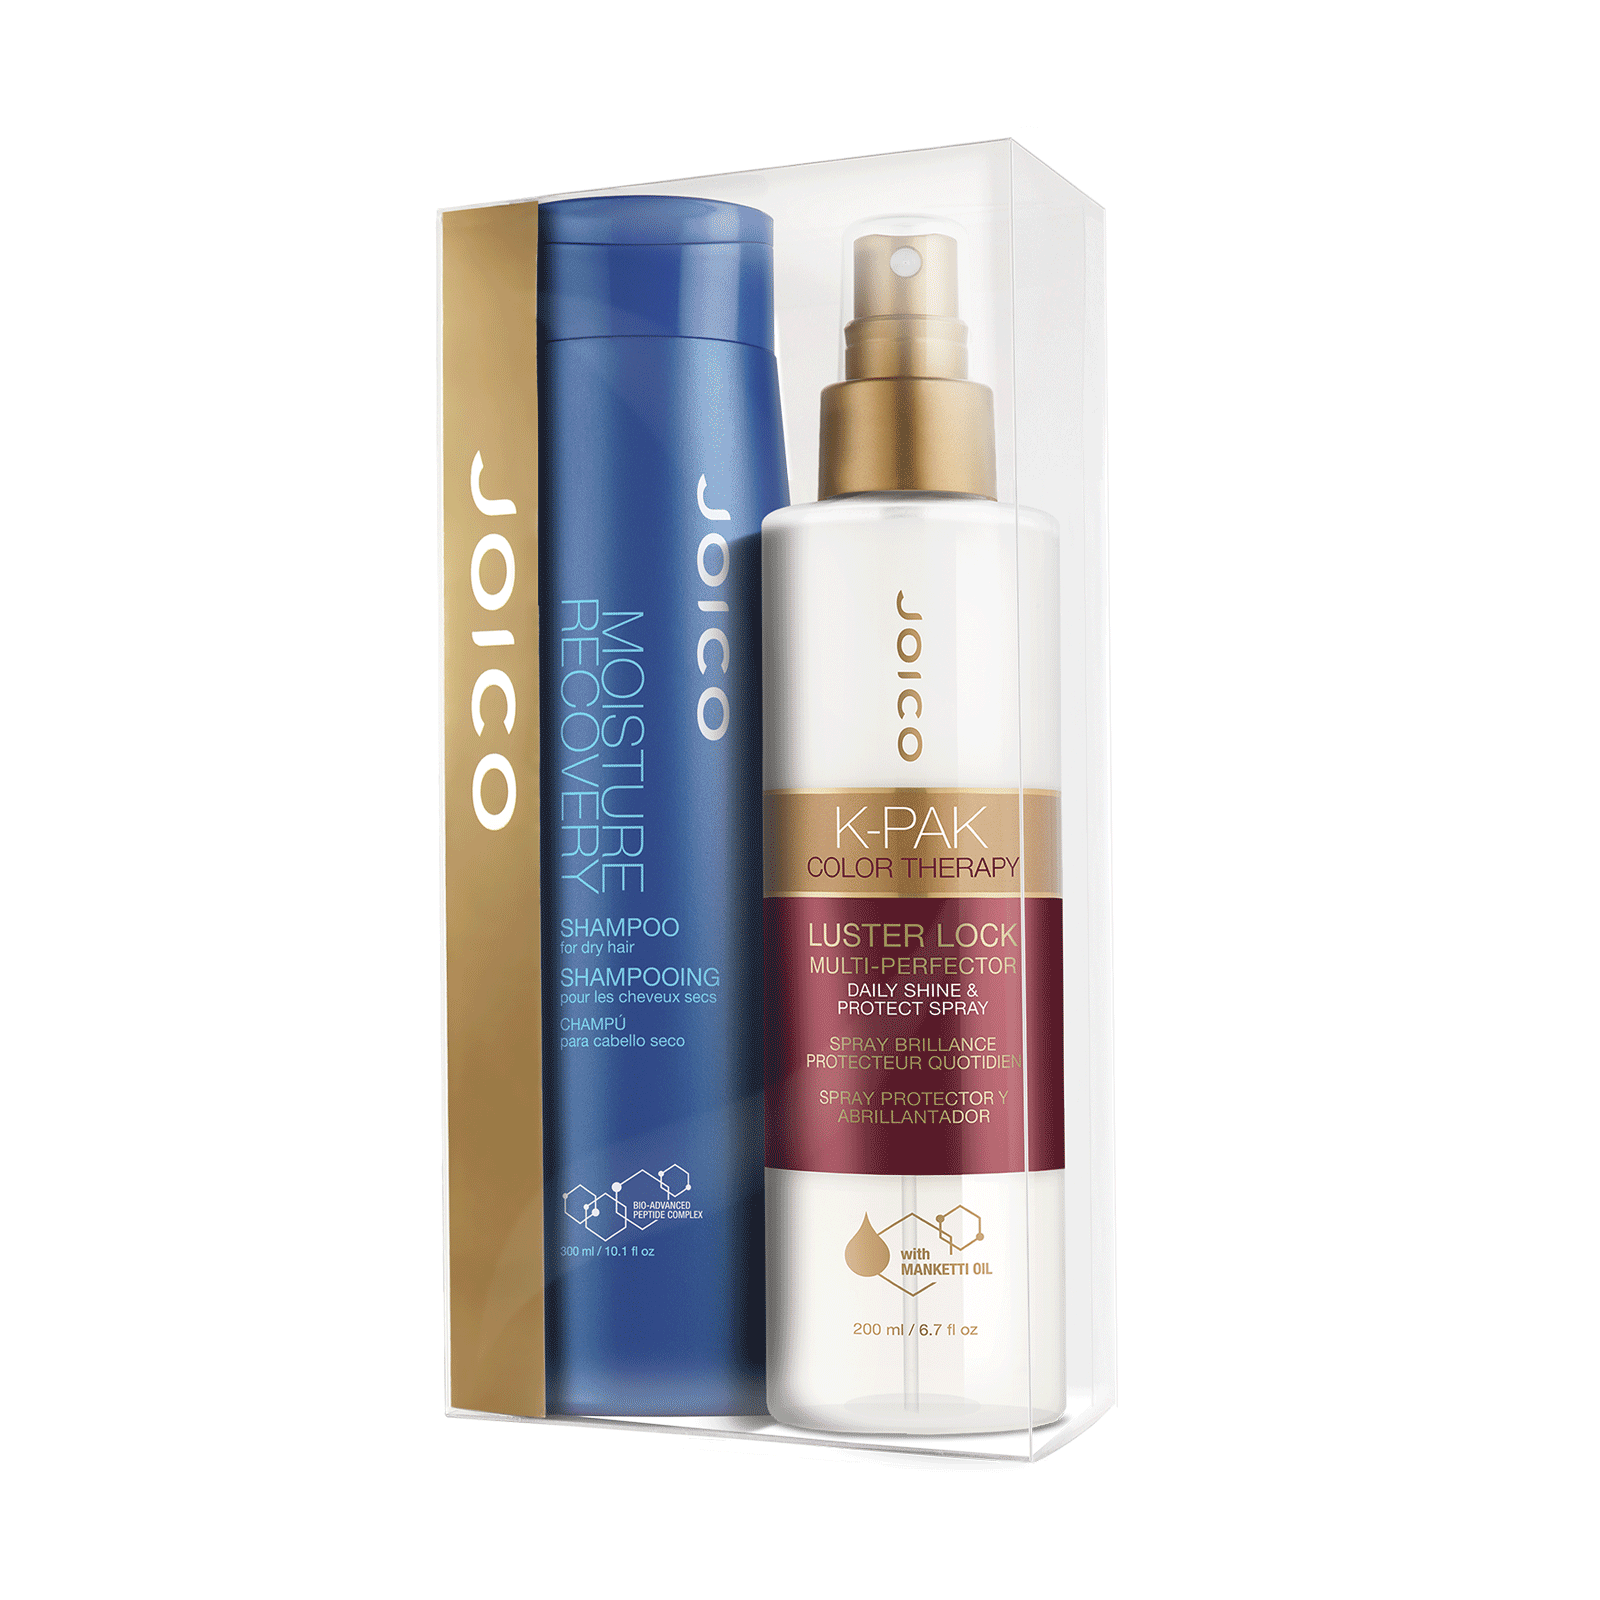 Moisture Recovery Shampoo & K-Pak Color Therapy Luster Lock